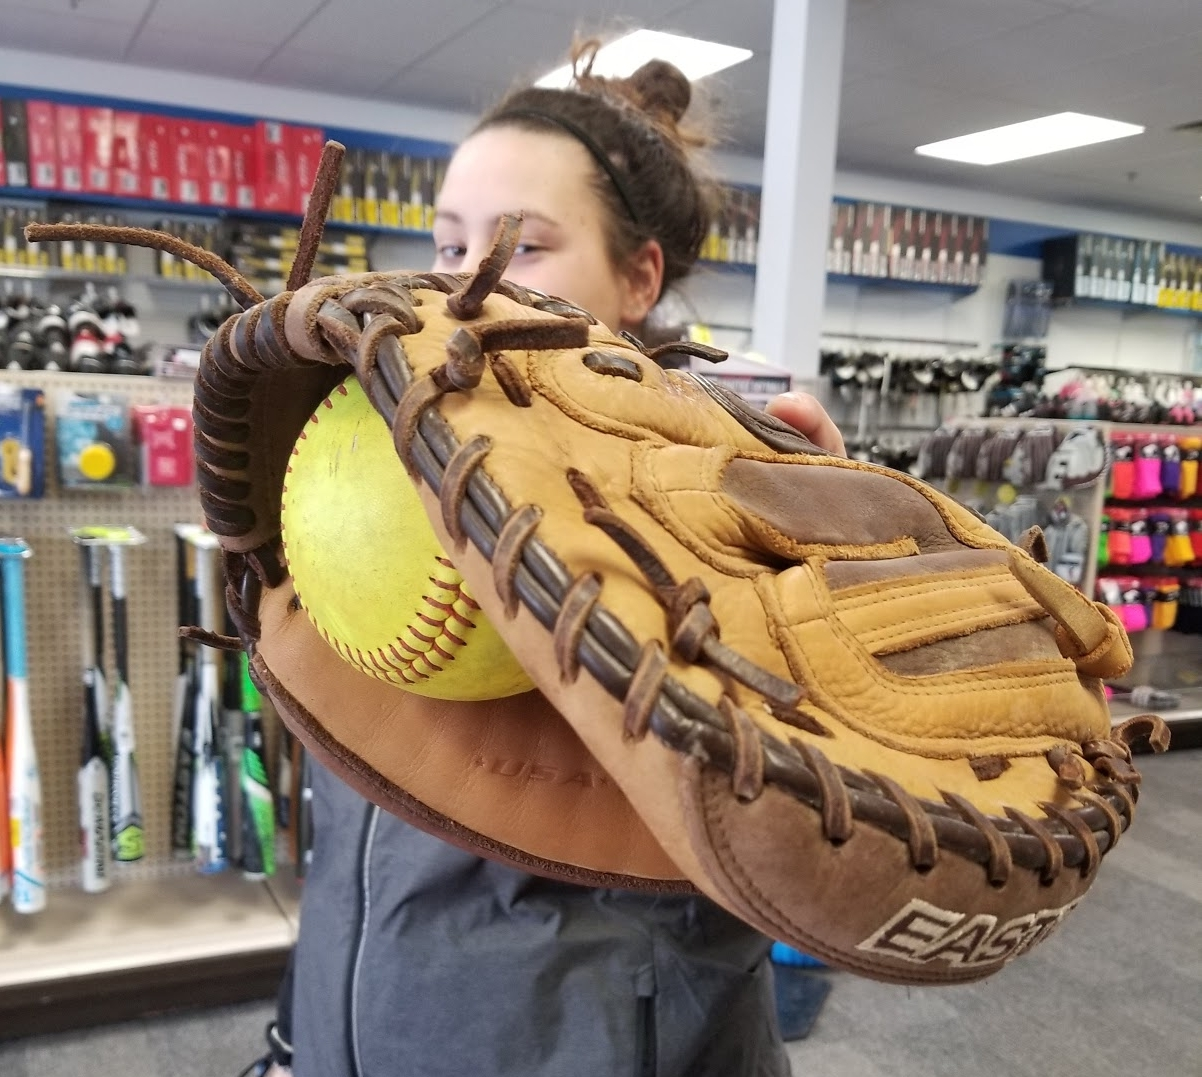 2018 BASEBALL & SOFTBALL - We are fully stocked with 2018 youth and adult baseball and softball regulation bats as well as youth and adult mitts. With supplies for every ability level, stop in to get sized up with all the gear you need soon.Not sure what size you need? All of our staff can size you up and help you decide on the perfect bat for your swing.